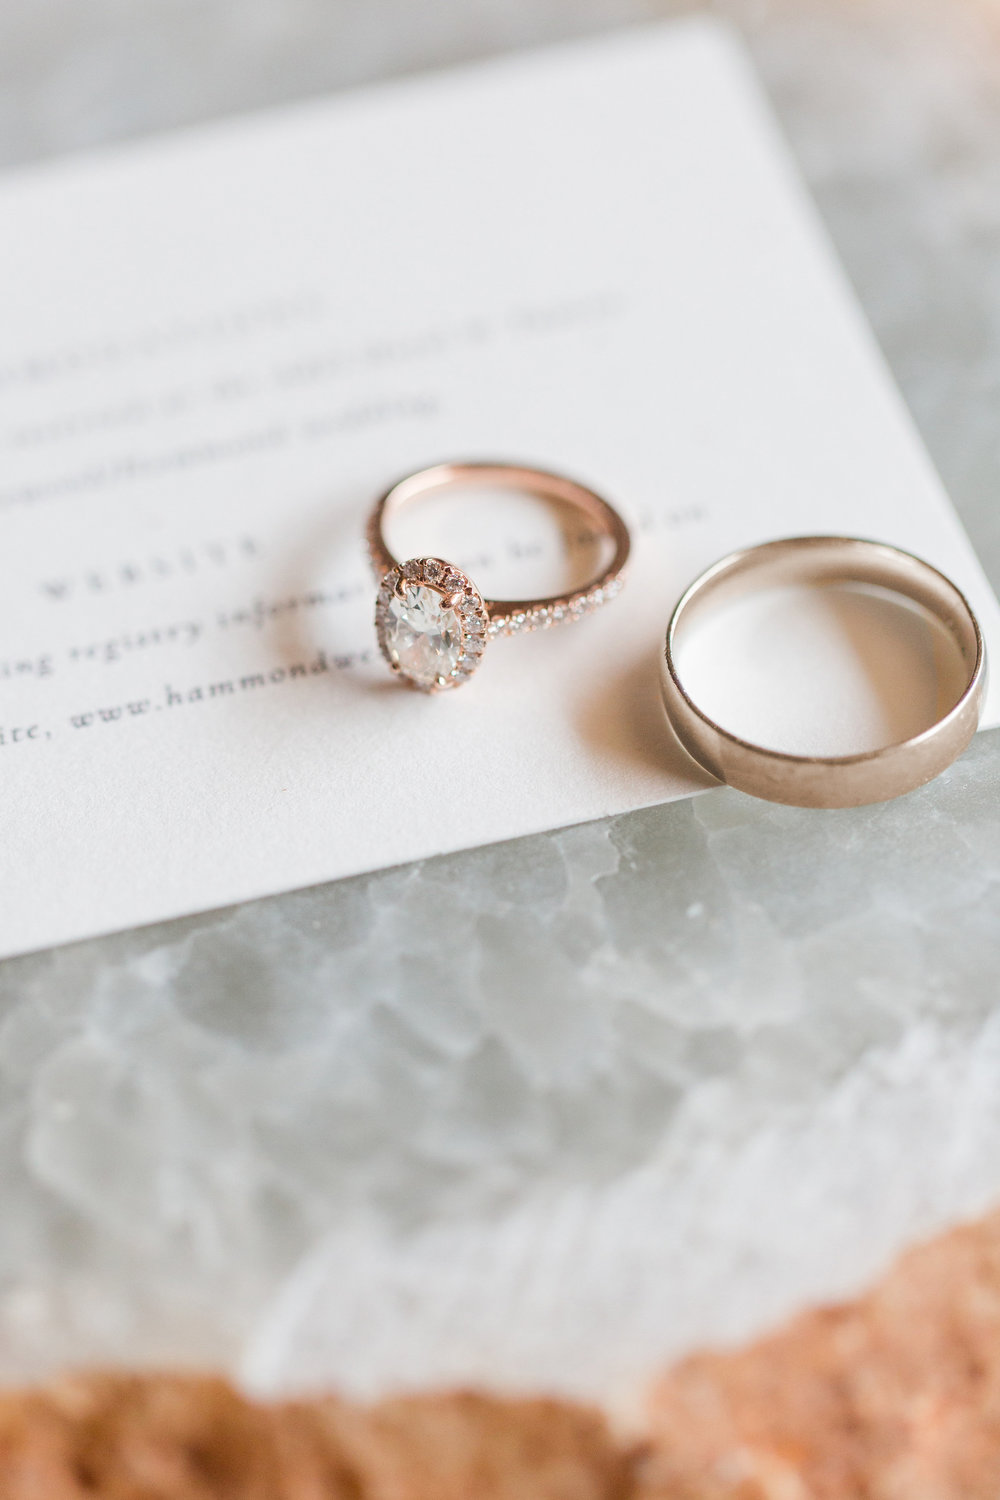 nvite-suite-mostly-becky-weddings-simple-pin-white-iowa-wedding-rose-gold-wedding-ring